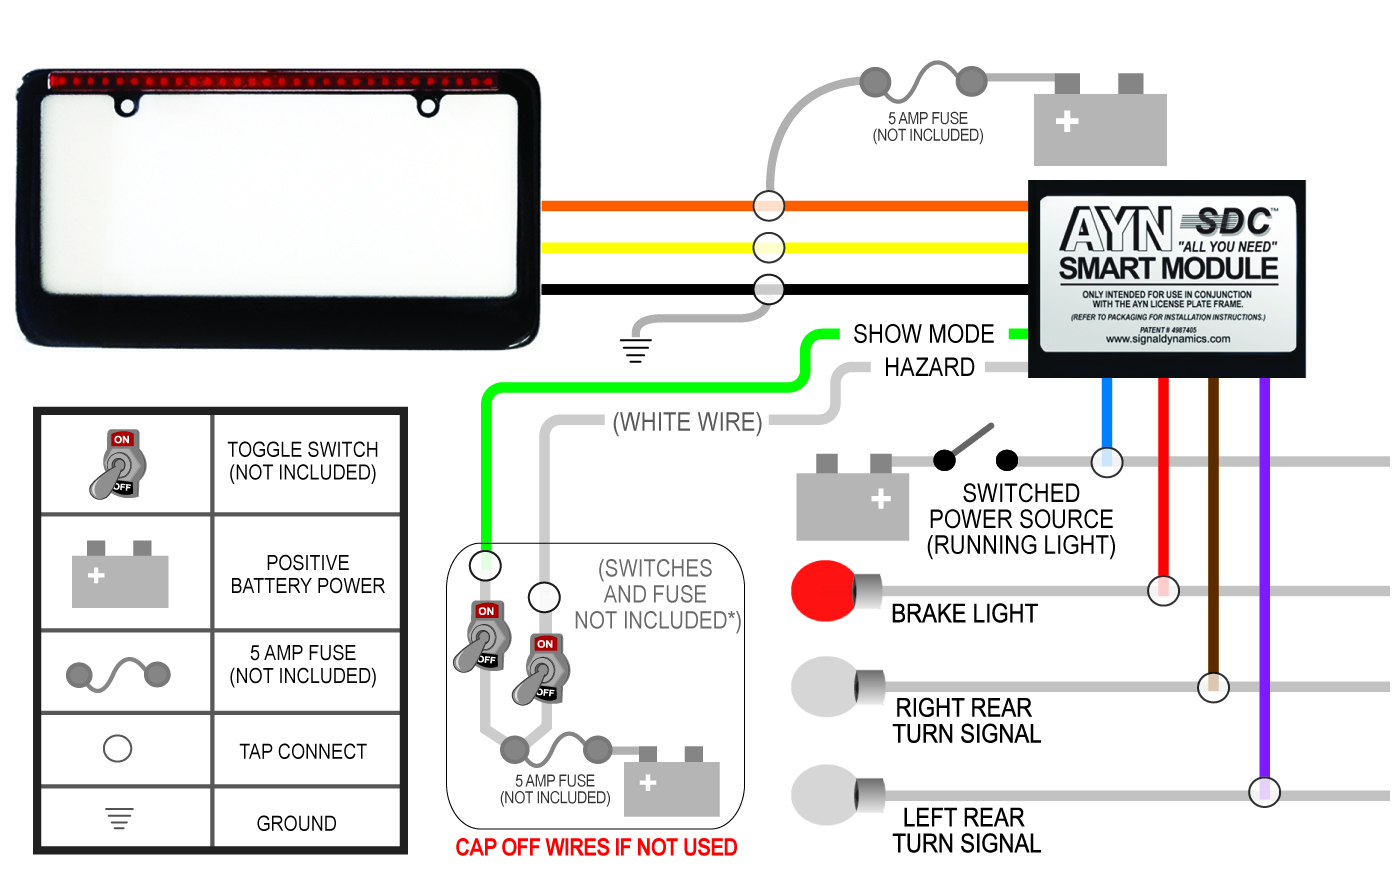 black auto wiring diagram?t=1399476781 black ayn automotive license plate frame & smart module combo Basic Turn Signal Wiring Diagram at mifinder.co